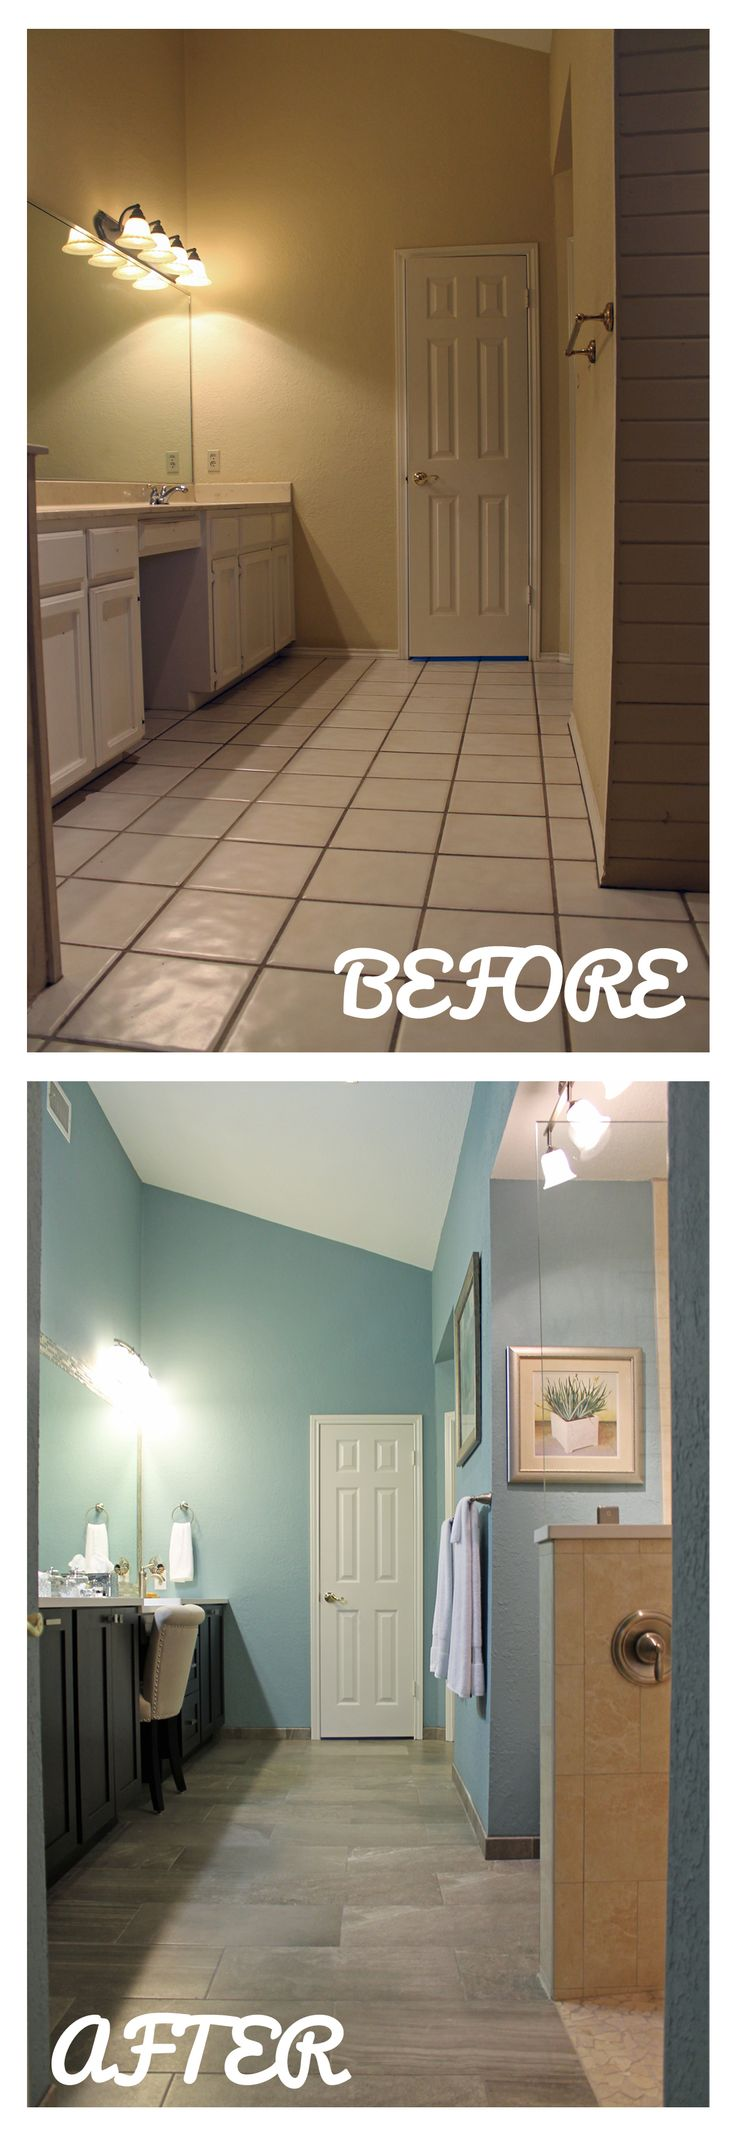 33 best before and after remodeling images on pinterest photo master bathroom before and after remodel